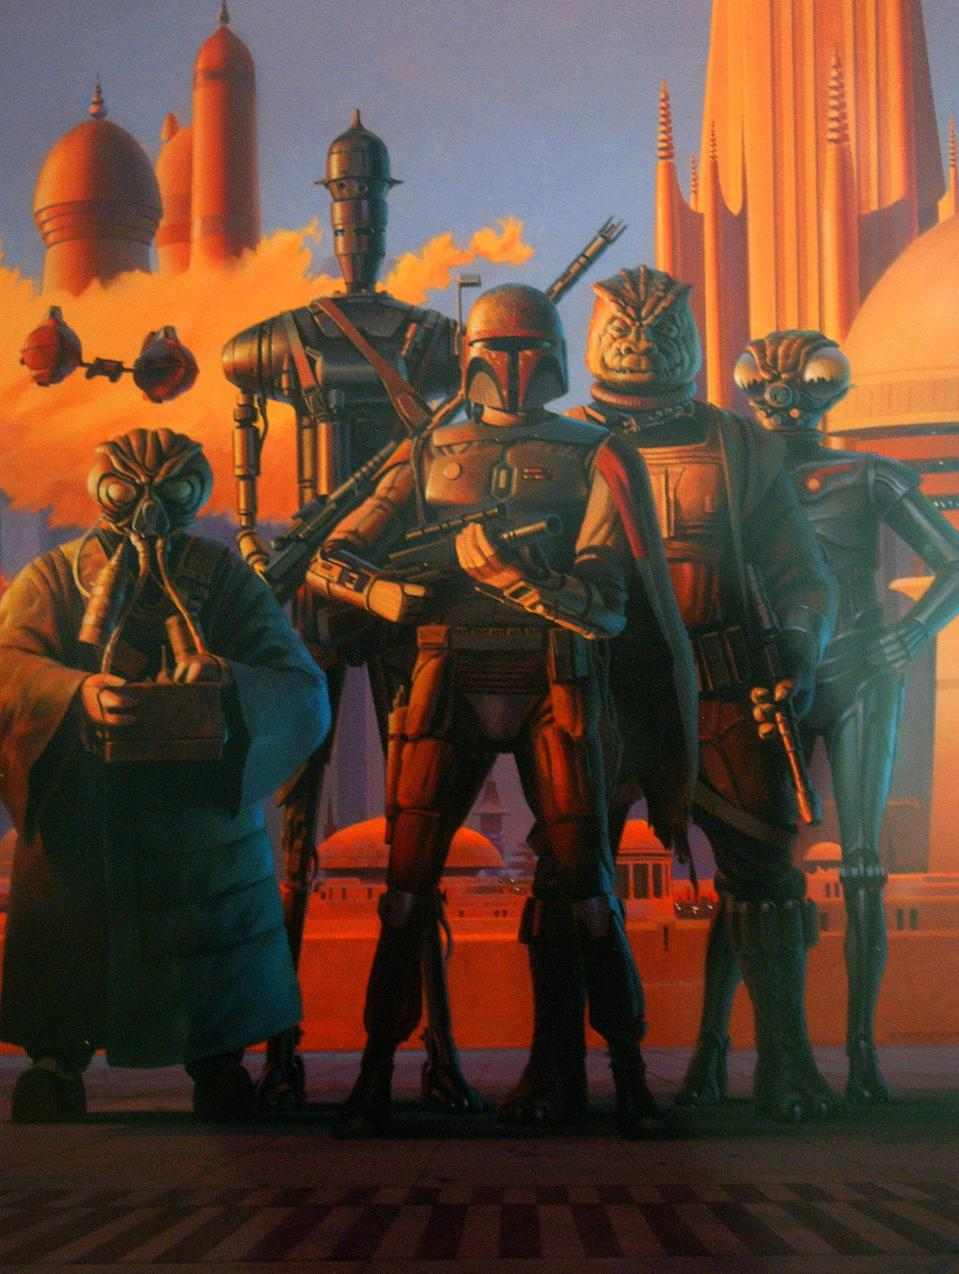 """403367 12: Original artwork titled """"Bounty Hunters in Cloud City"""" by Ralph McQuarrie is displayed April 4, 2002 at the exhibit """"Star Wars: The Magic of the Myth"""" at the Brooklyn Museum of Art in Brooklyn, New York. The exhibition, which is making its last stop in the United States, presents original costumes, models, props and artwork used in the original film trilogy; """"Star Wars: A New Hope,"""" """"The Empire Strikes Back"""" and """"Return of the Jedi."""" (Photo by Spencer Platt/Getty Images)"""